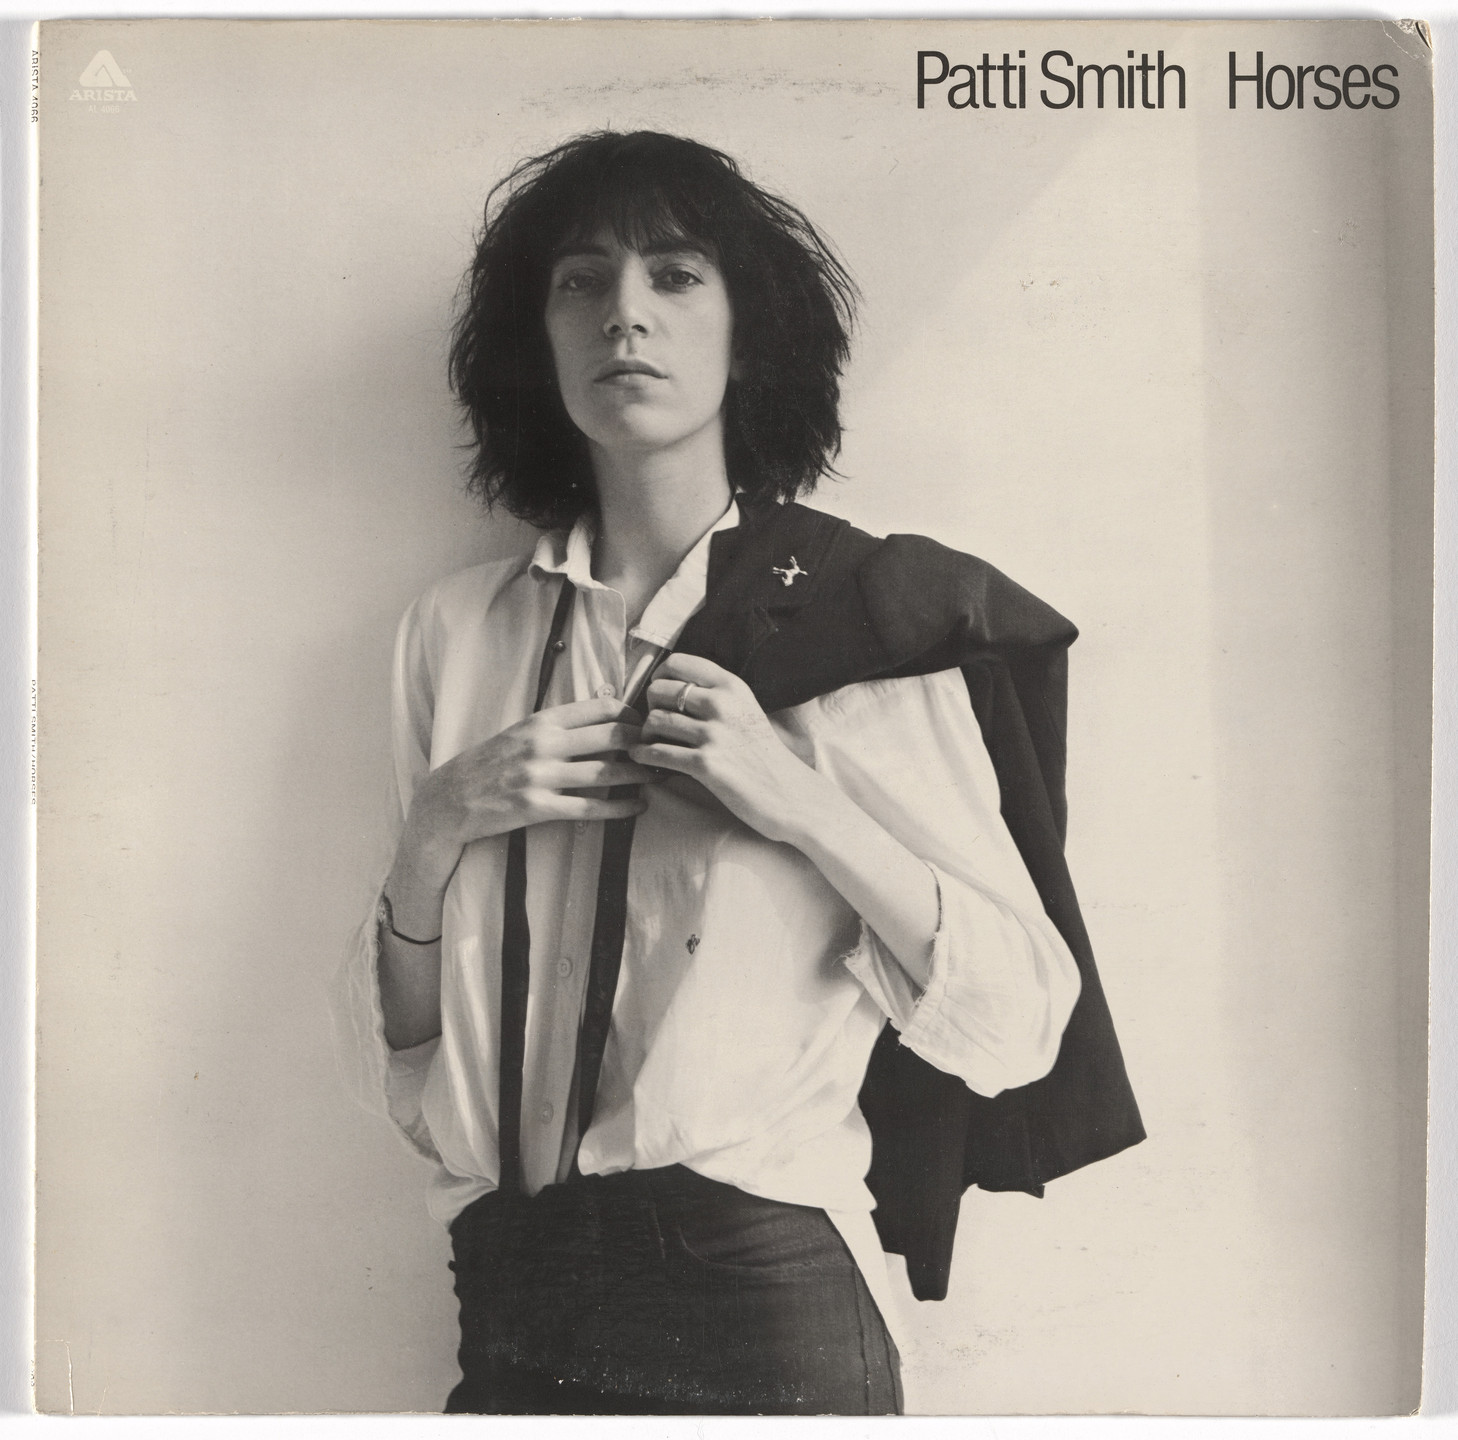 Robert Mapplethorpe, Bob Heimall, Arista Records. Album cover for Patti Smith, Horses. 1975